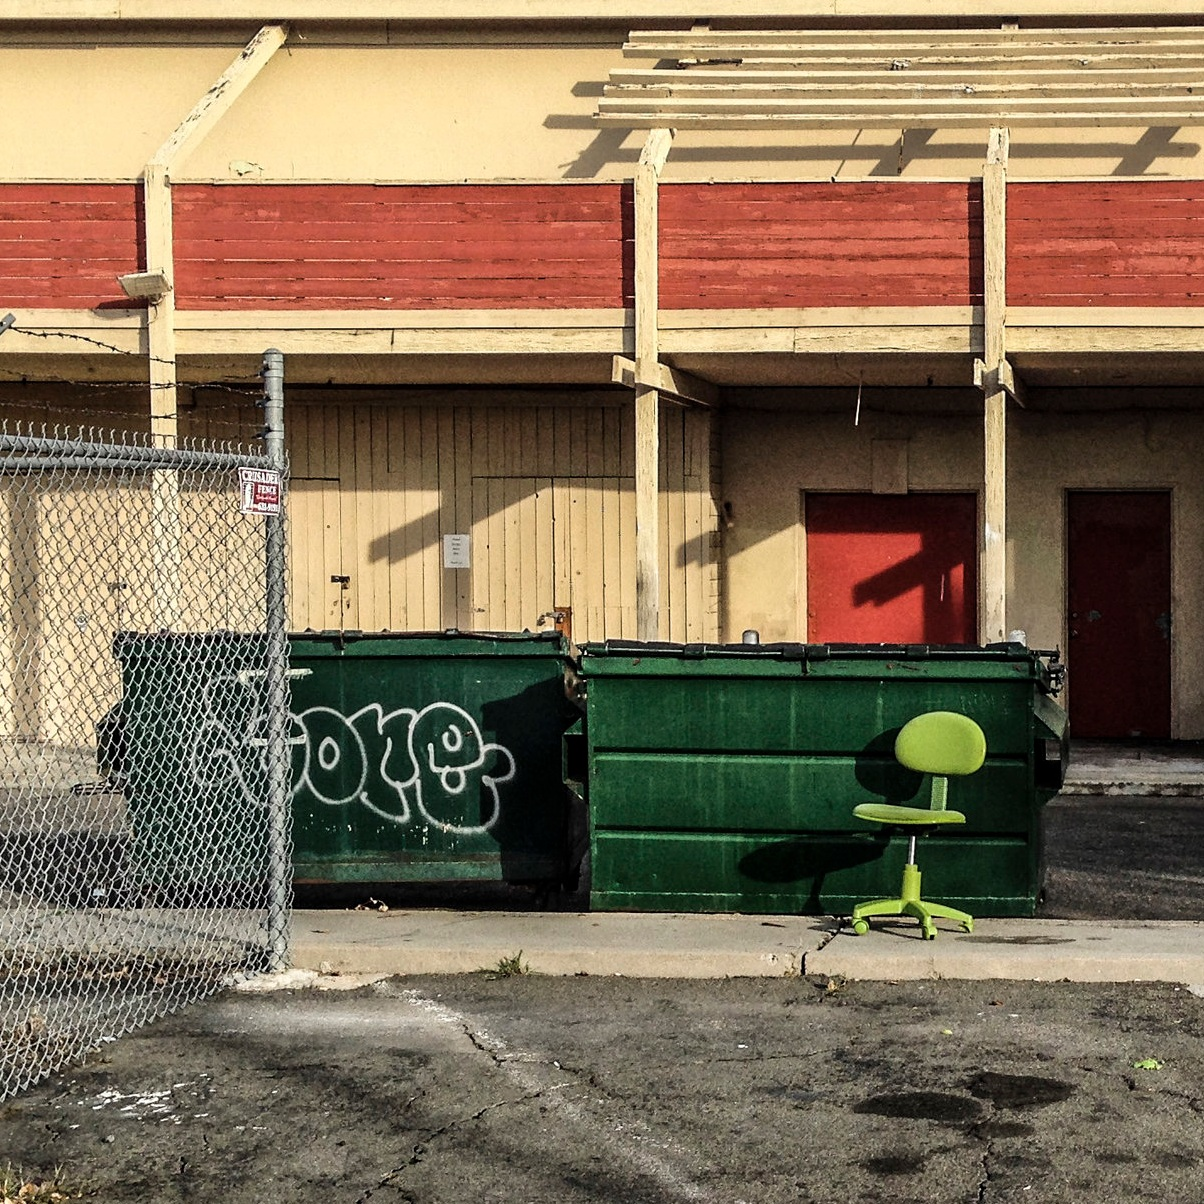 While graffiti on a dumpster is technically not the responsibility of the business, it's unsightly and reflects poorly on the ambiance of the building's exterior.